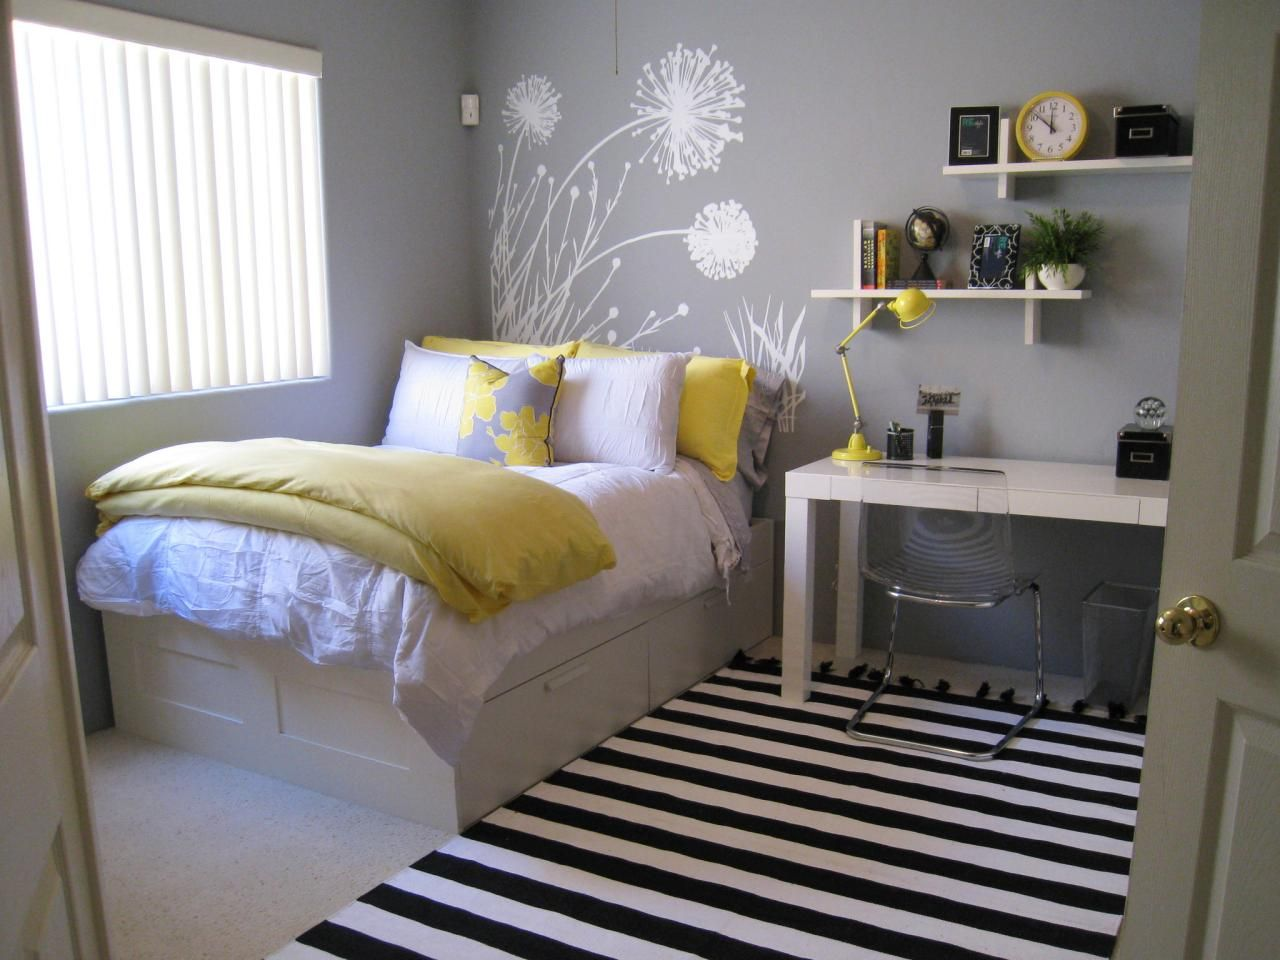 Bedroom Design For Teenagers Pictures Of Bedroom Color Options From Soothing To Romantic